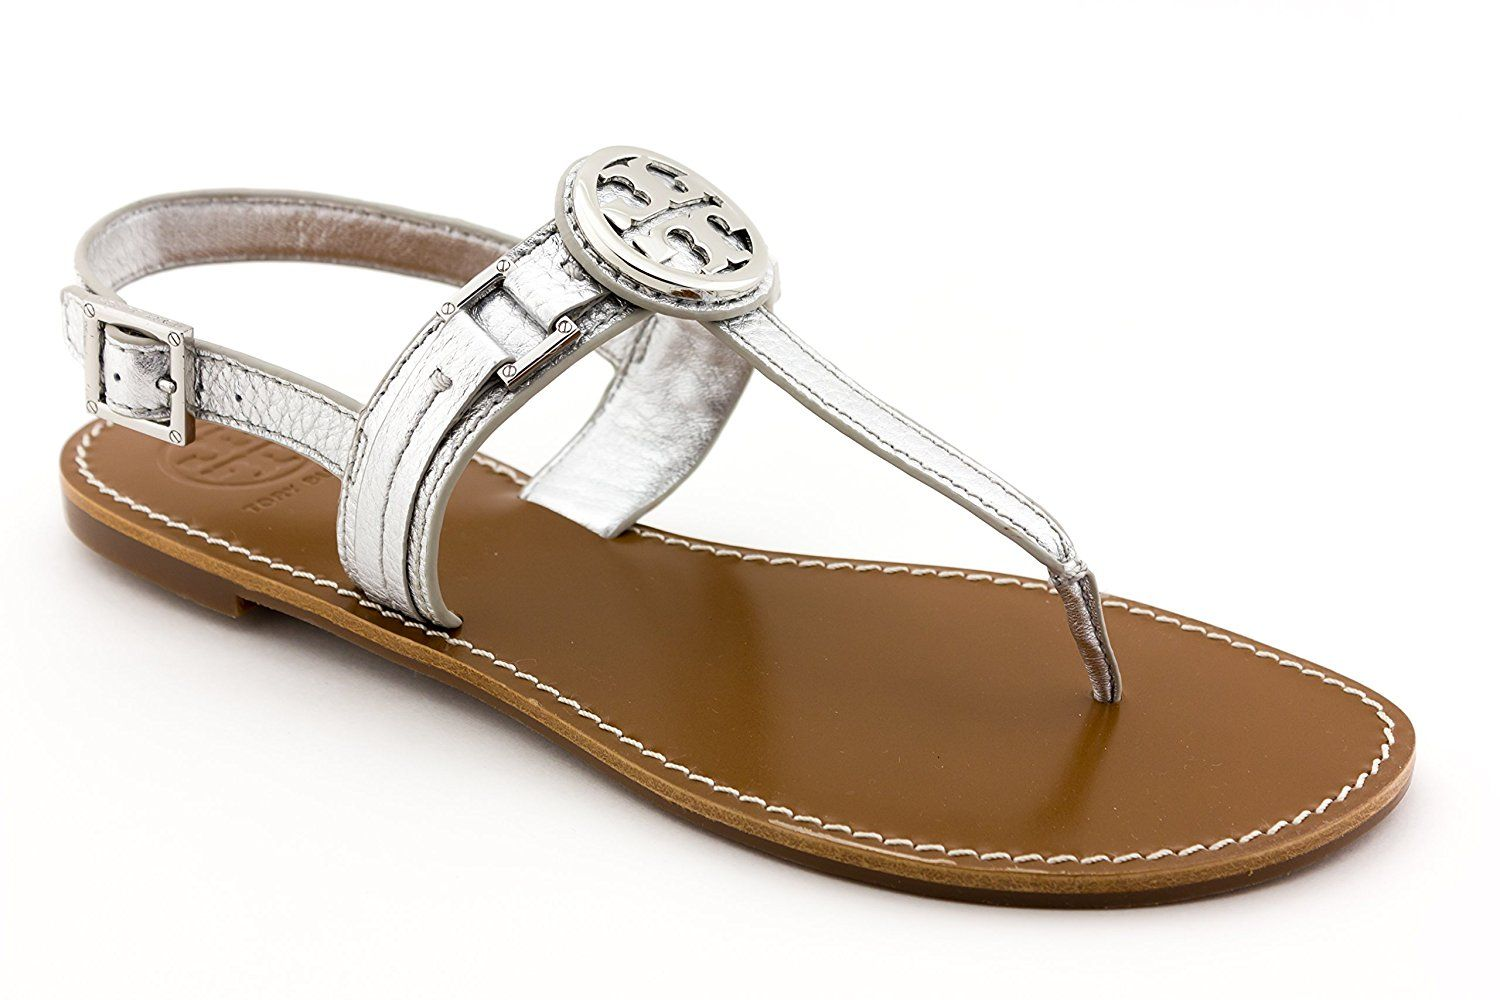 41c617d6d7e823 Tory Burch Flat Thong Sandal Cassia Leather Flip Flop TB Logo French Calf  Silver 9.5